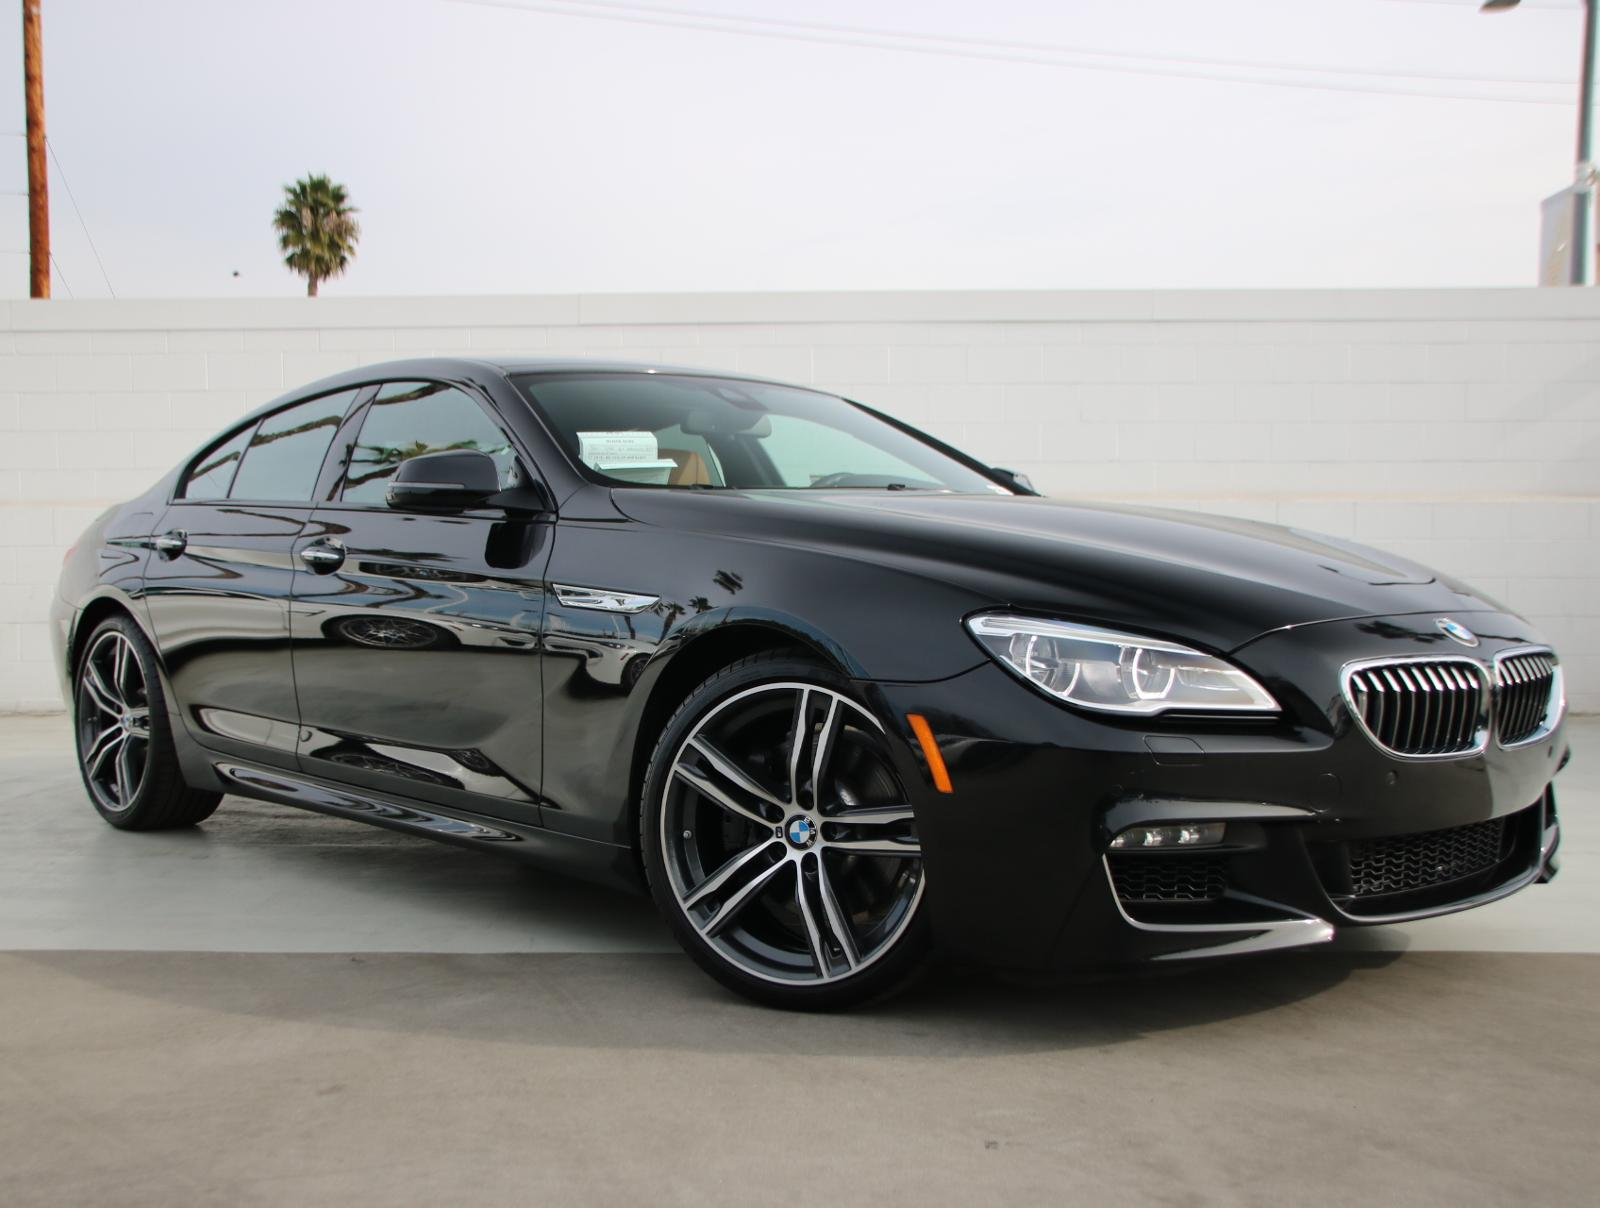 Pre-Owned 2019 BMW 6 Series 640i Rear Wheel Drive 640i Gran Coupe